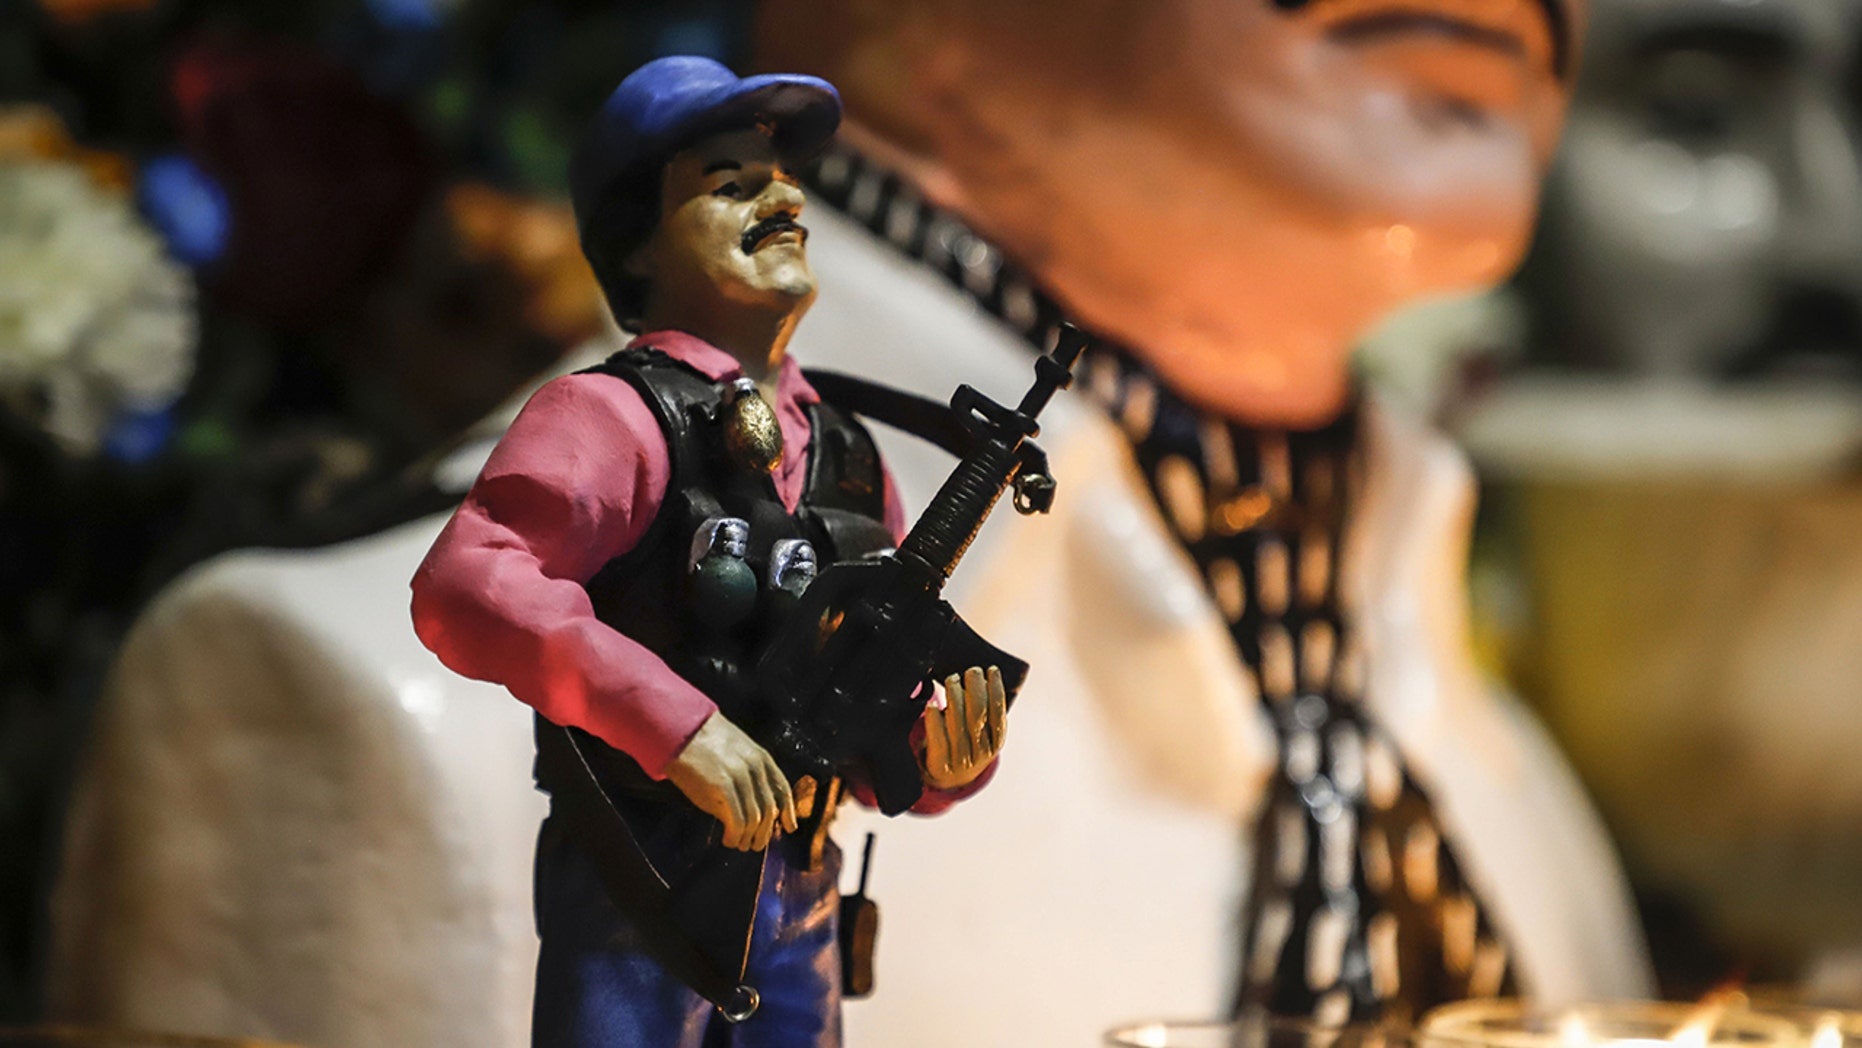 """A statue of Mexican drug lord Joaquin """"El Chapo"""" Guzman, is displayed for sale near a bust of narco-saint Jesus Malverde, at his chapel in Culiacan, Sinaloa state in northwest Mexico on Feb. 19. (Photo by RASHIDE FRIAS / AFP) (Photo credit should read RASHIDE FRIAS/AFP/Getty Images)"""